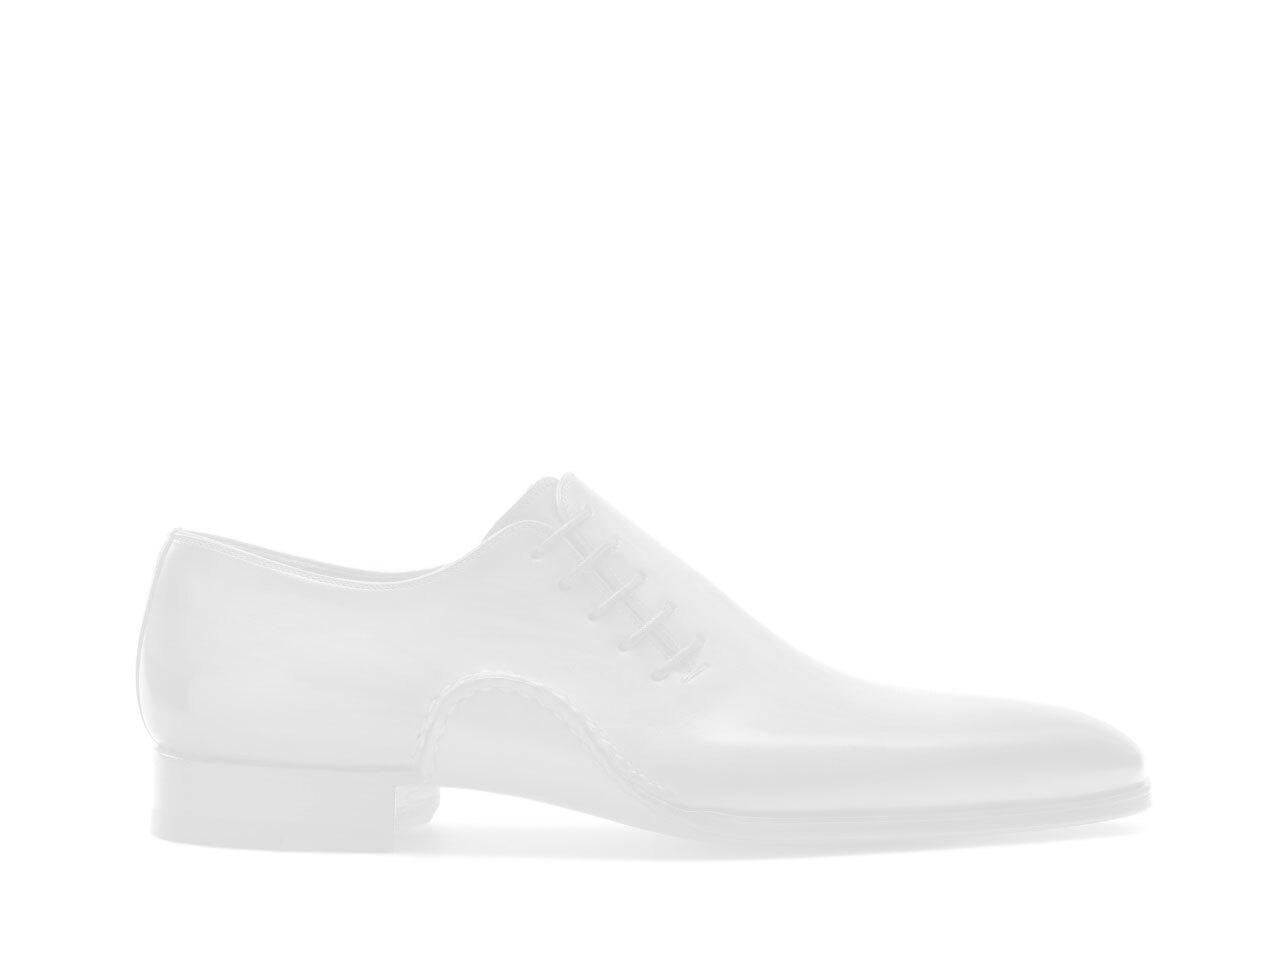 Side view of the Magnanni Turo Lo Black Men's Sneakers